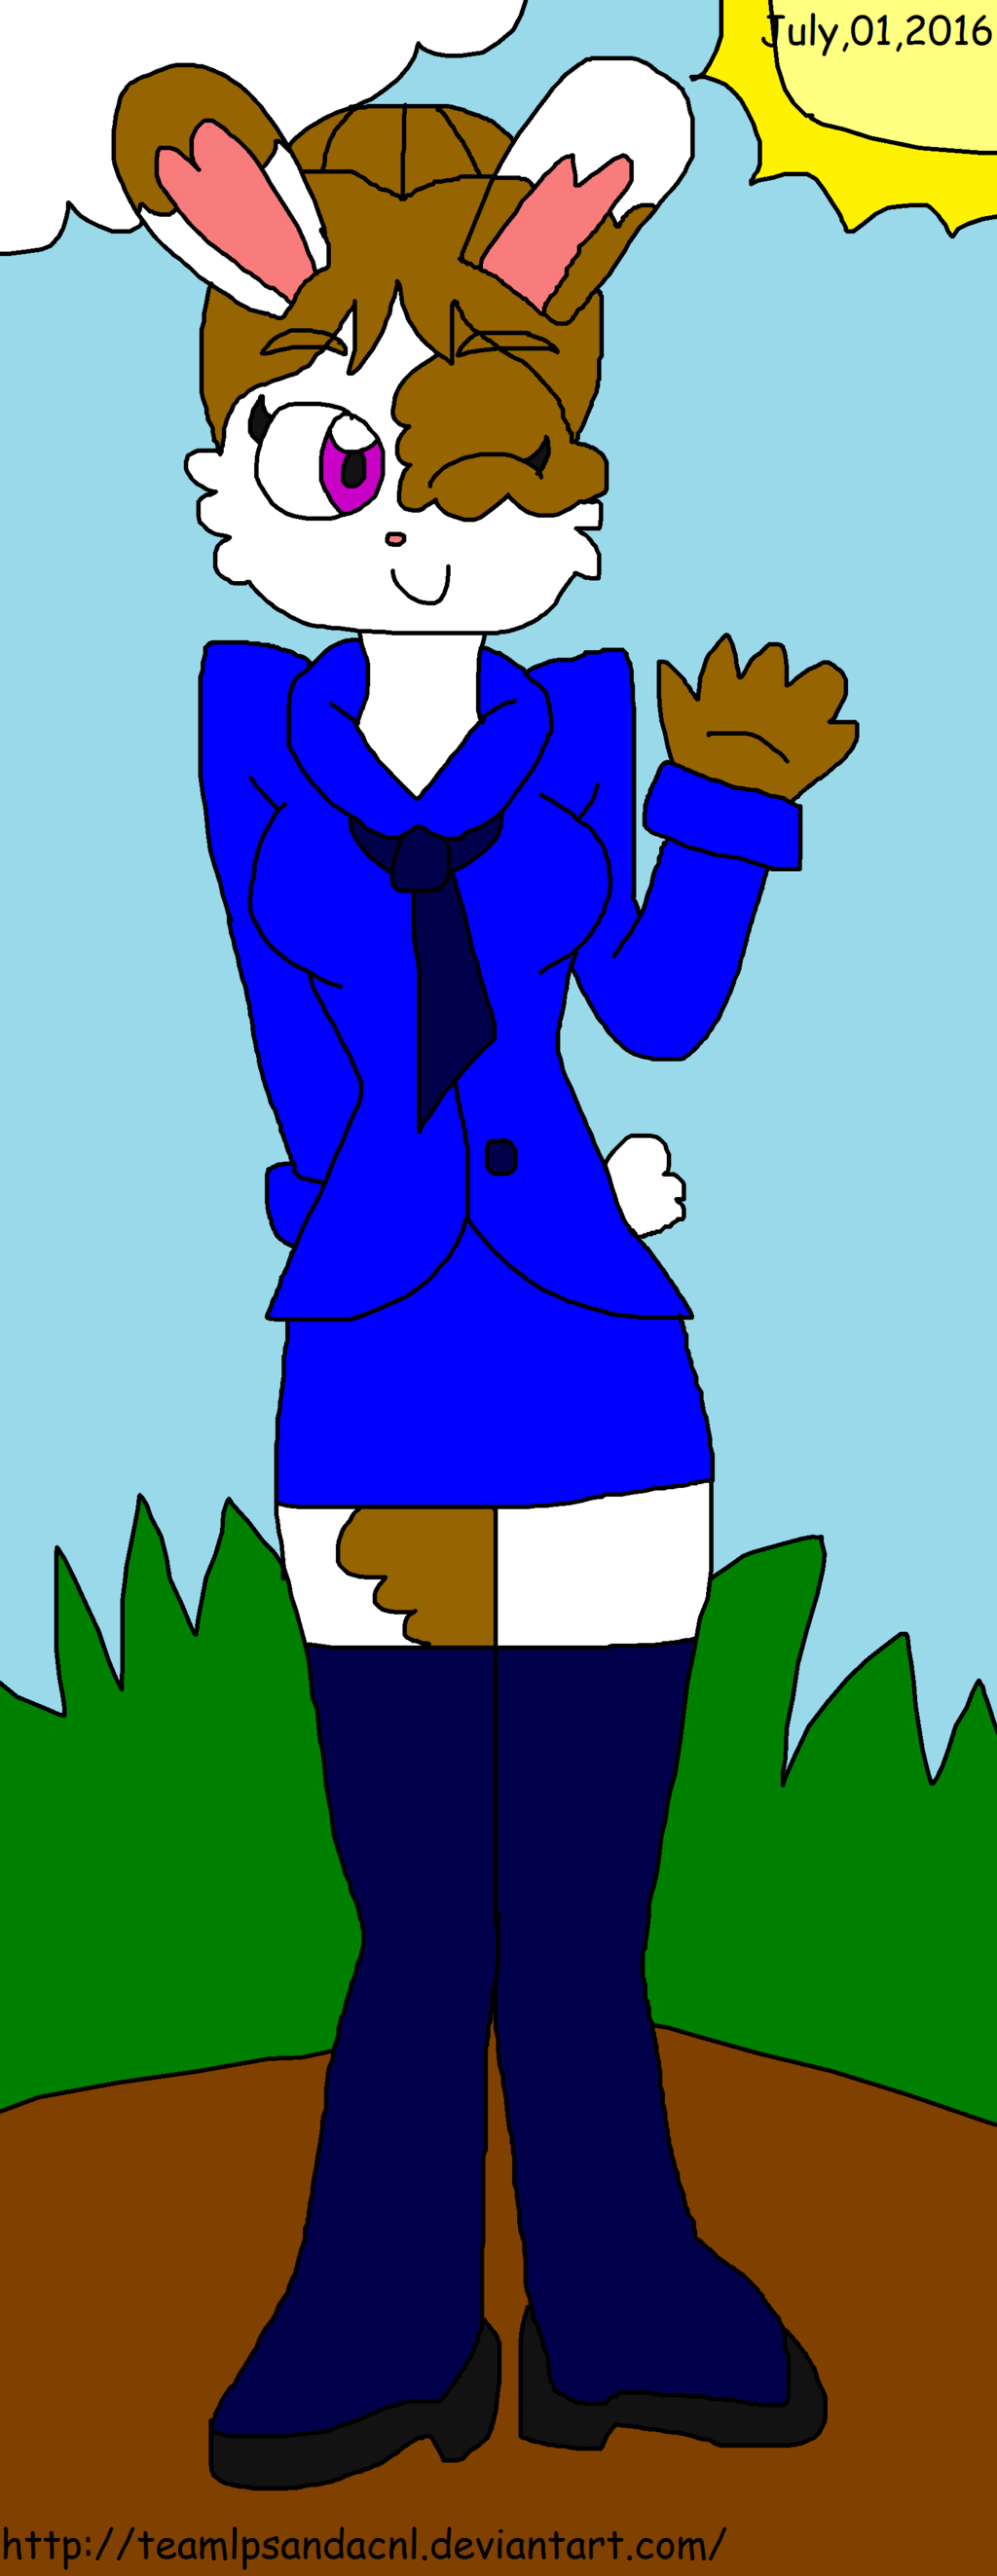 Bonnie Rabbitine Petropolis Newswoman by teamlpsandacnl on DeviantArt.